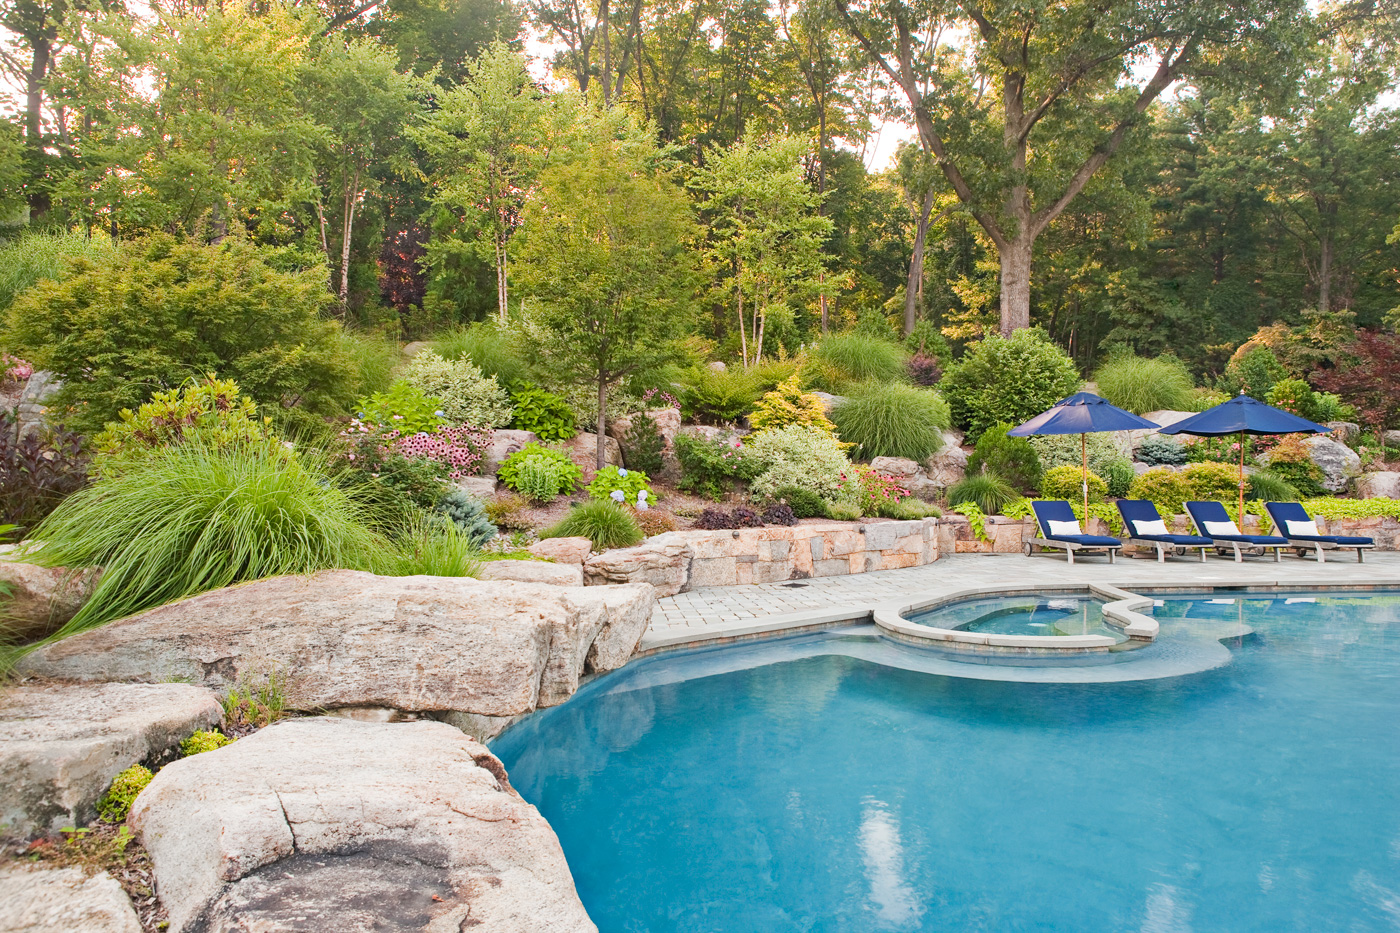 Spa and pool landscaping in nj by cording landscape design for Pool design hamilton nj